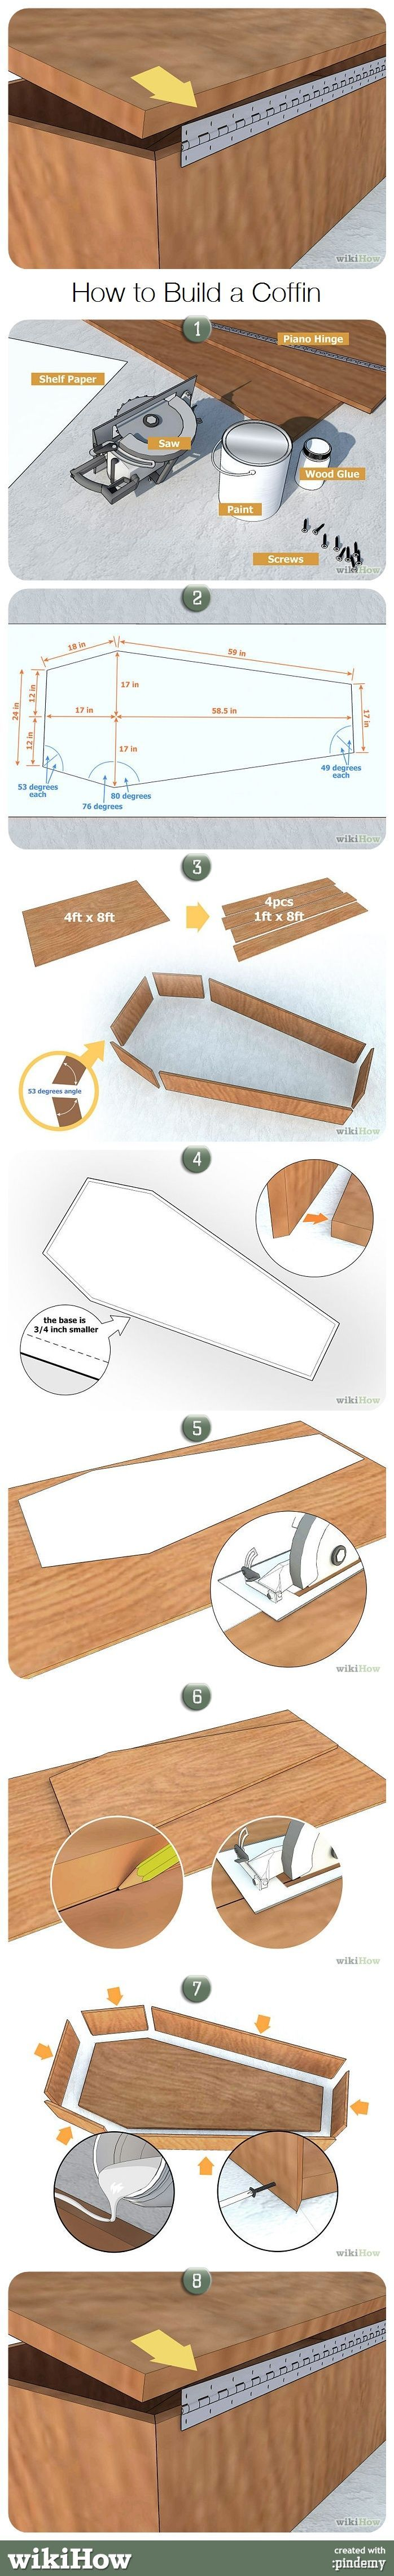 How to Make a Halloween Graveyard • Ideas and tutorials, including these complete coffin plans by 'Wikihow'!